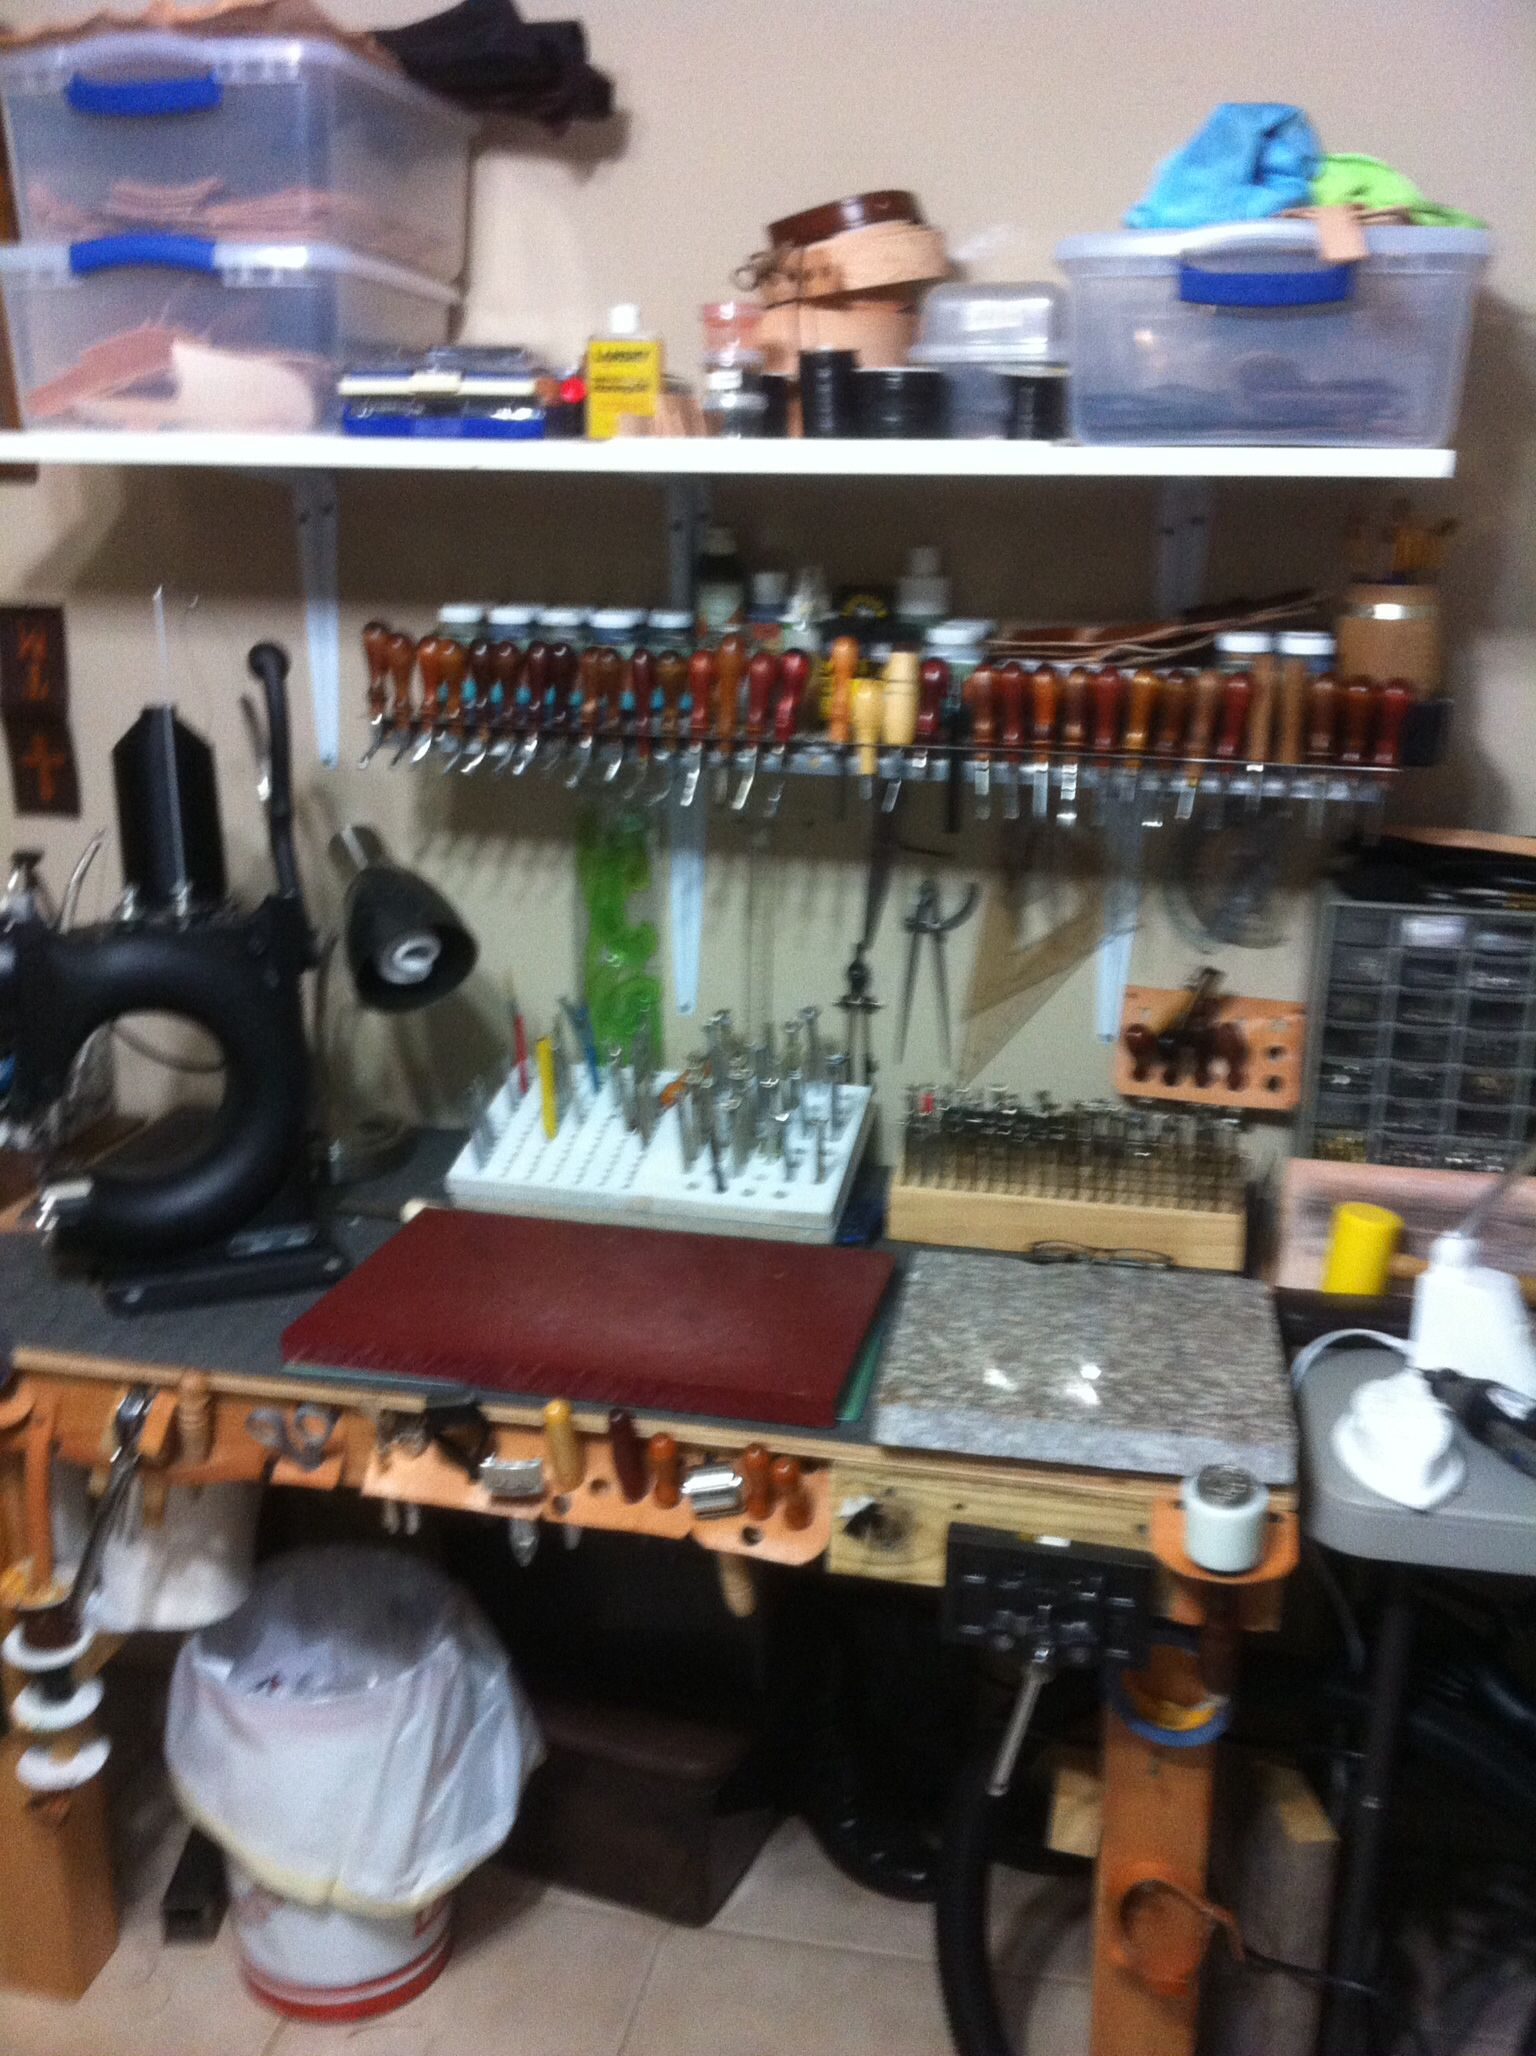 Leather Work Bench Check Out The Leather Tool Holder On